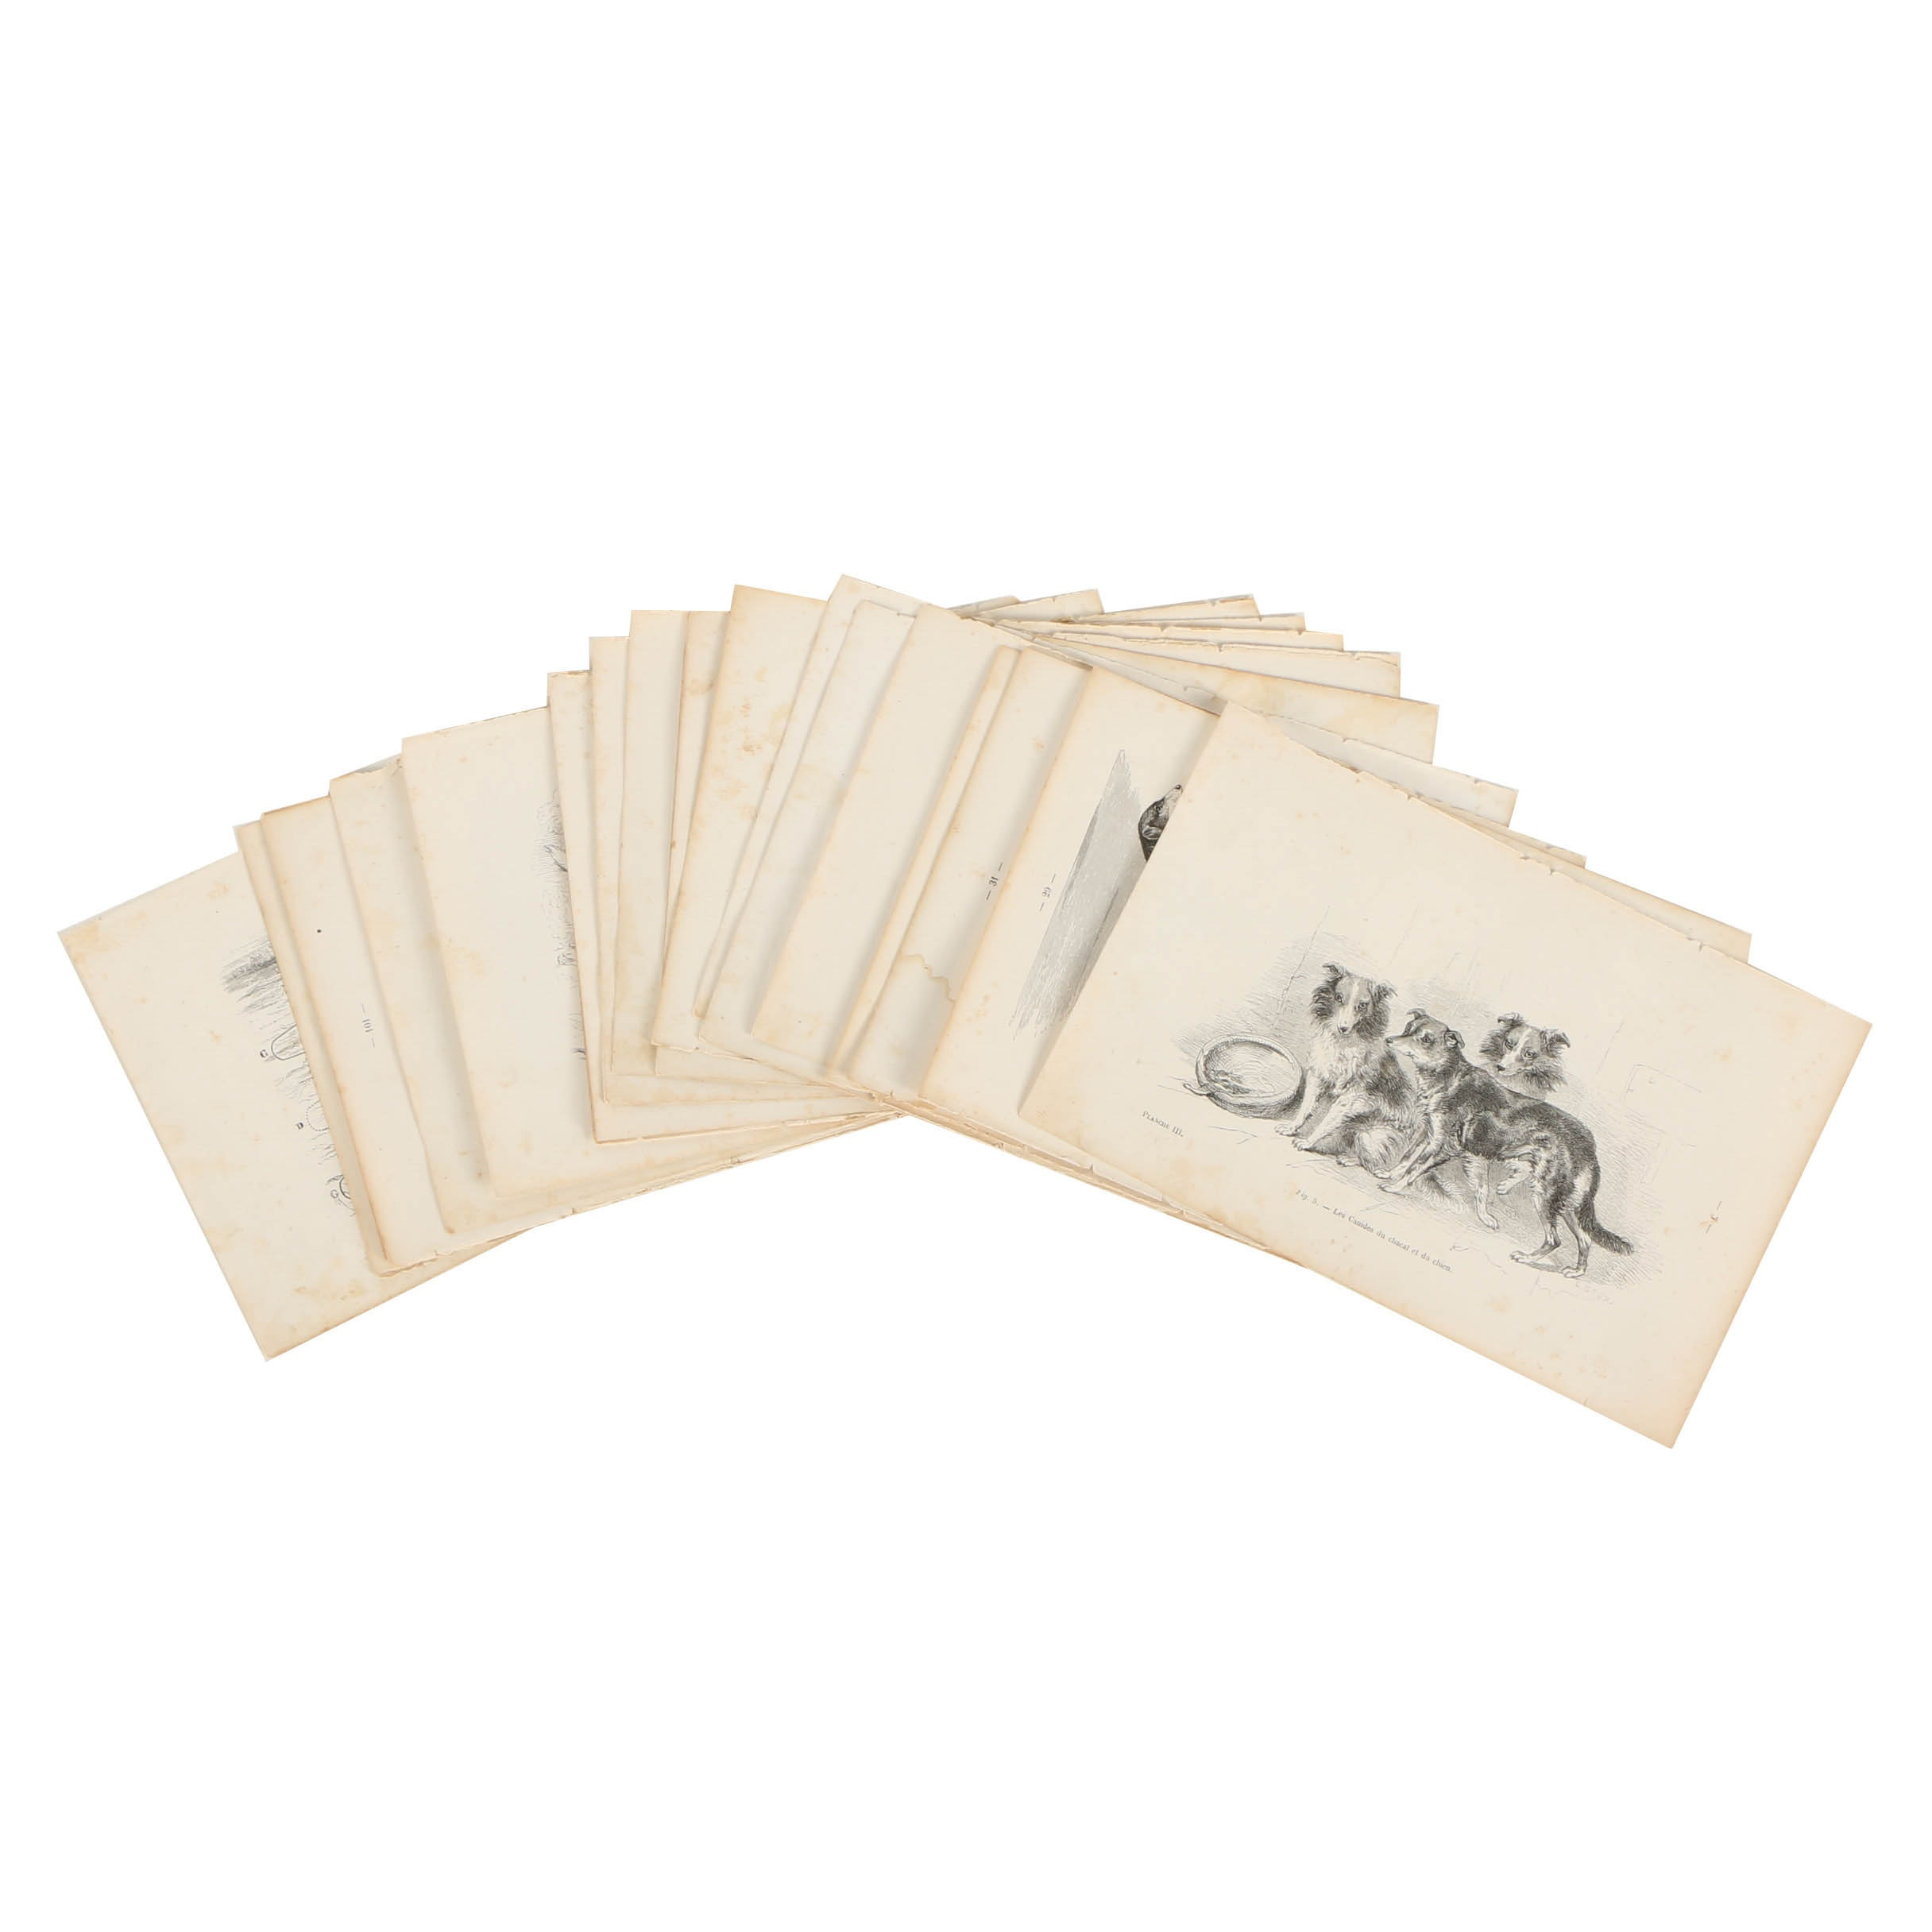 Lithograph Prints on Paper of Dogs